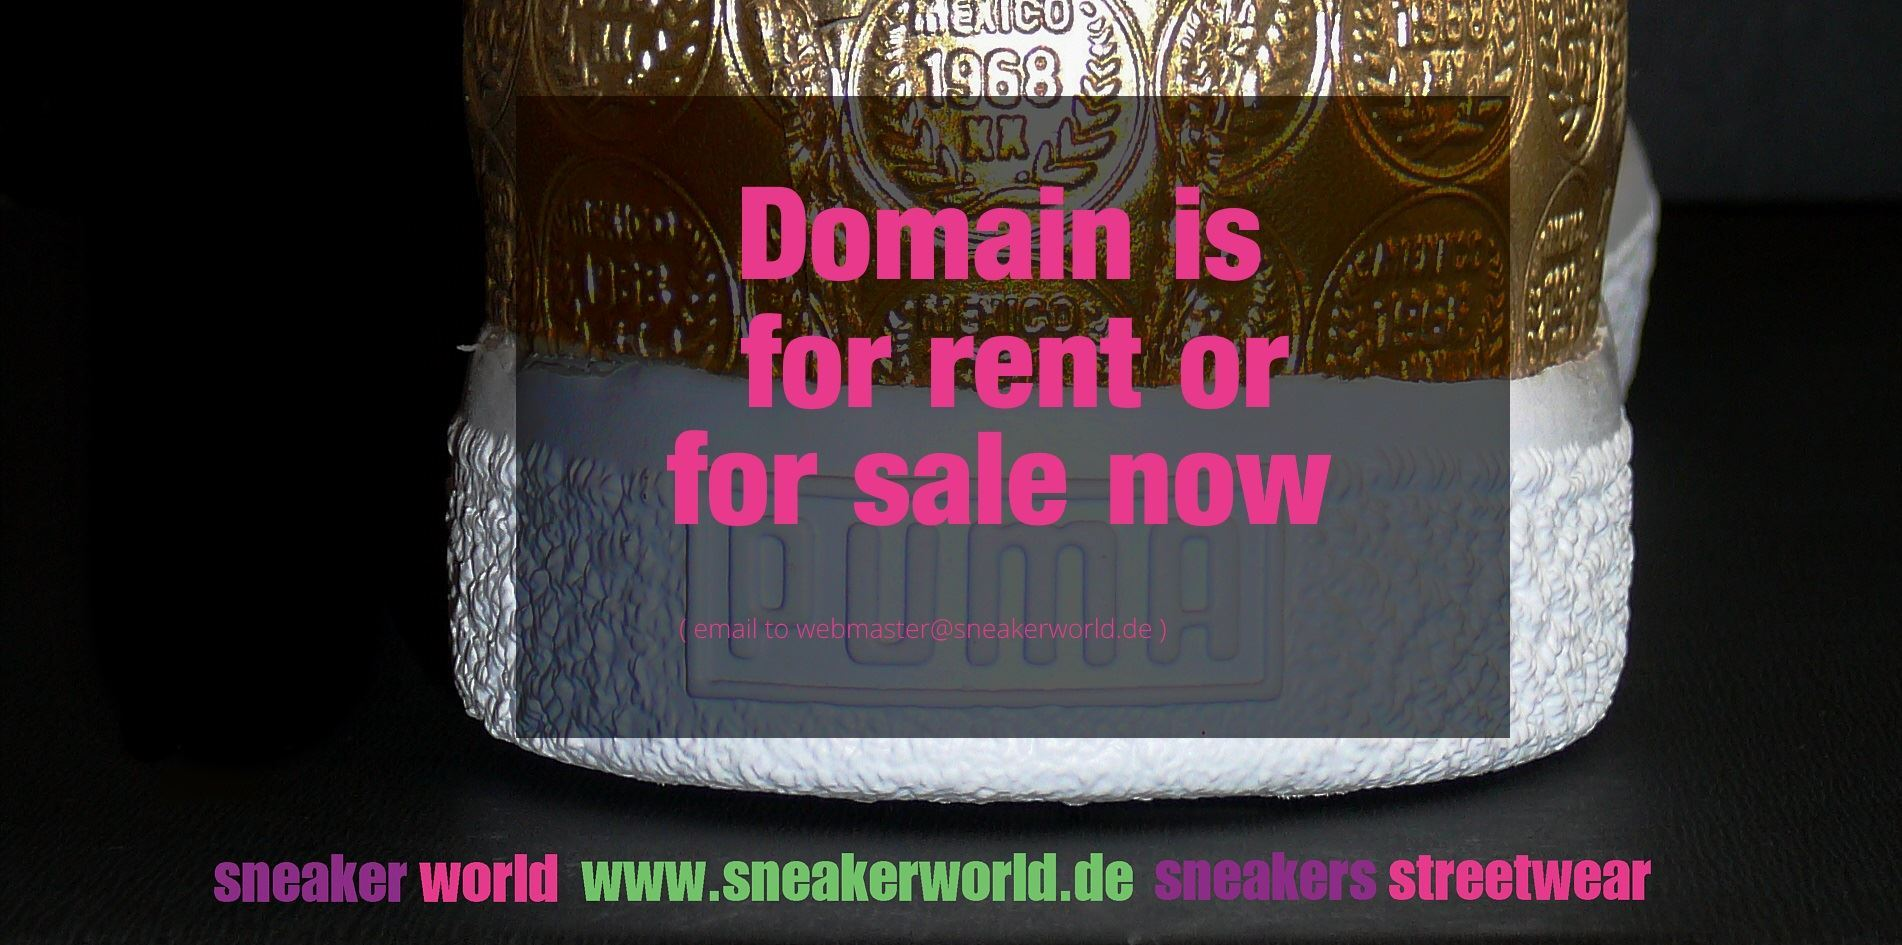 sneakerworld.de - domain for rent or for sale now